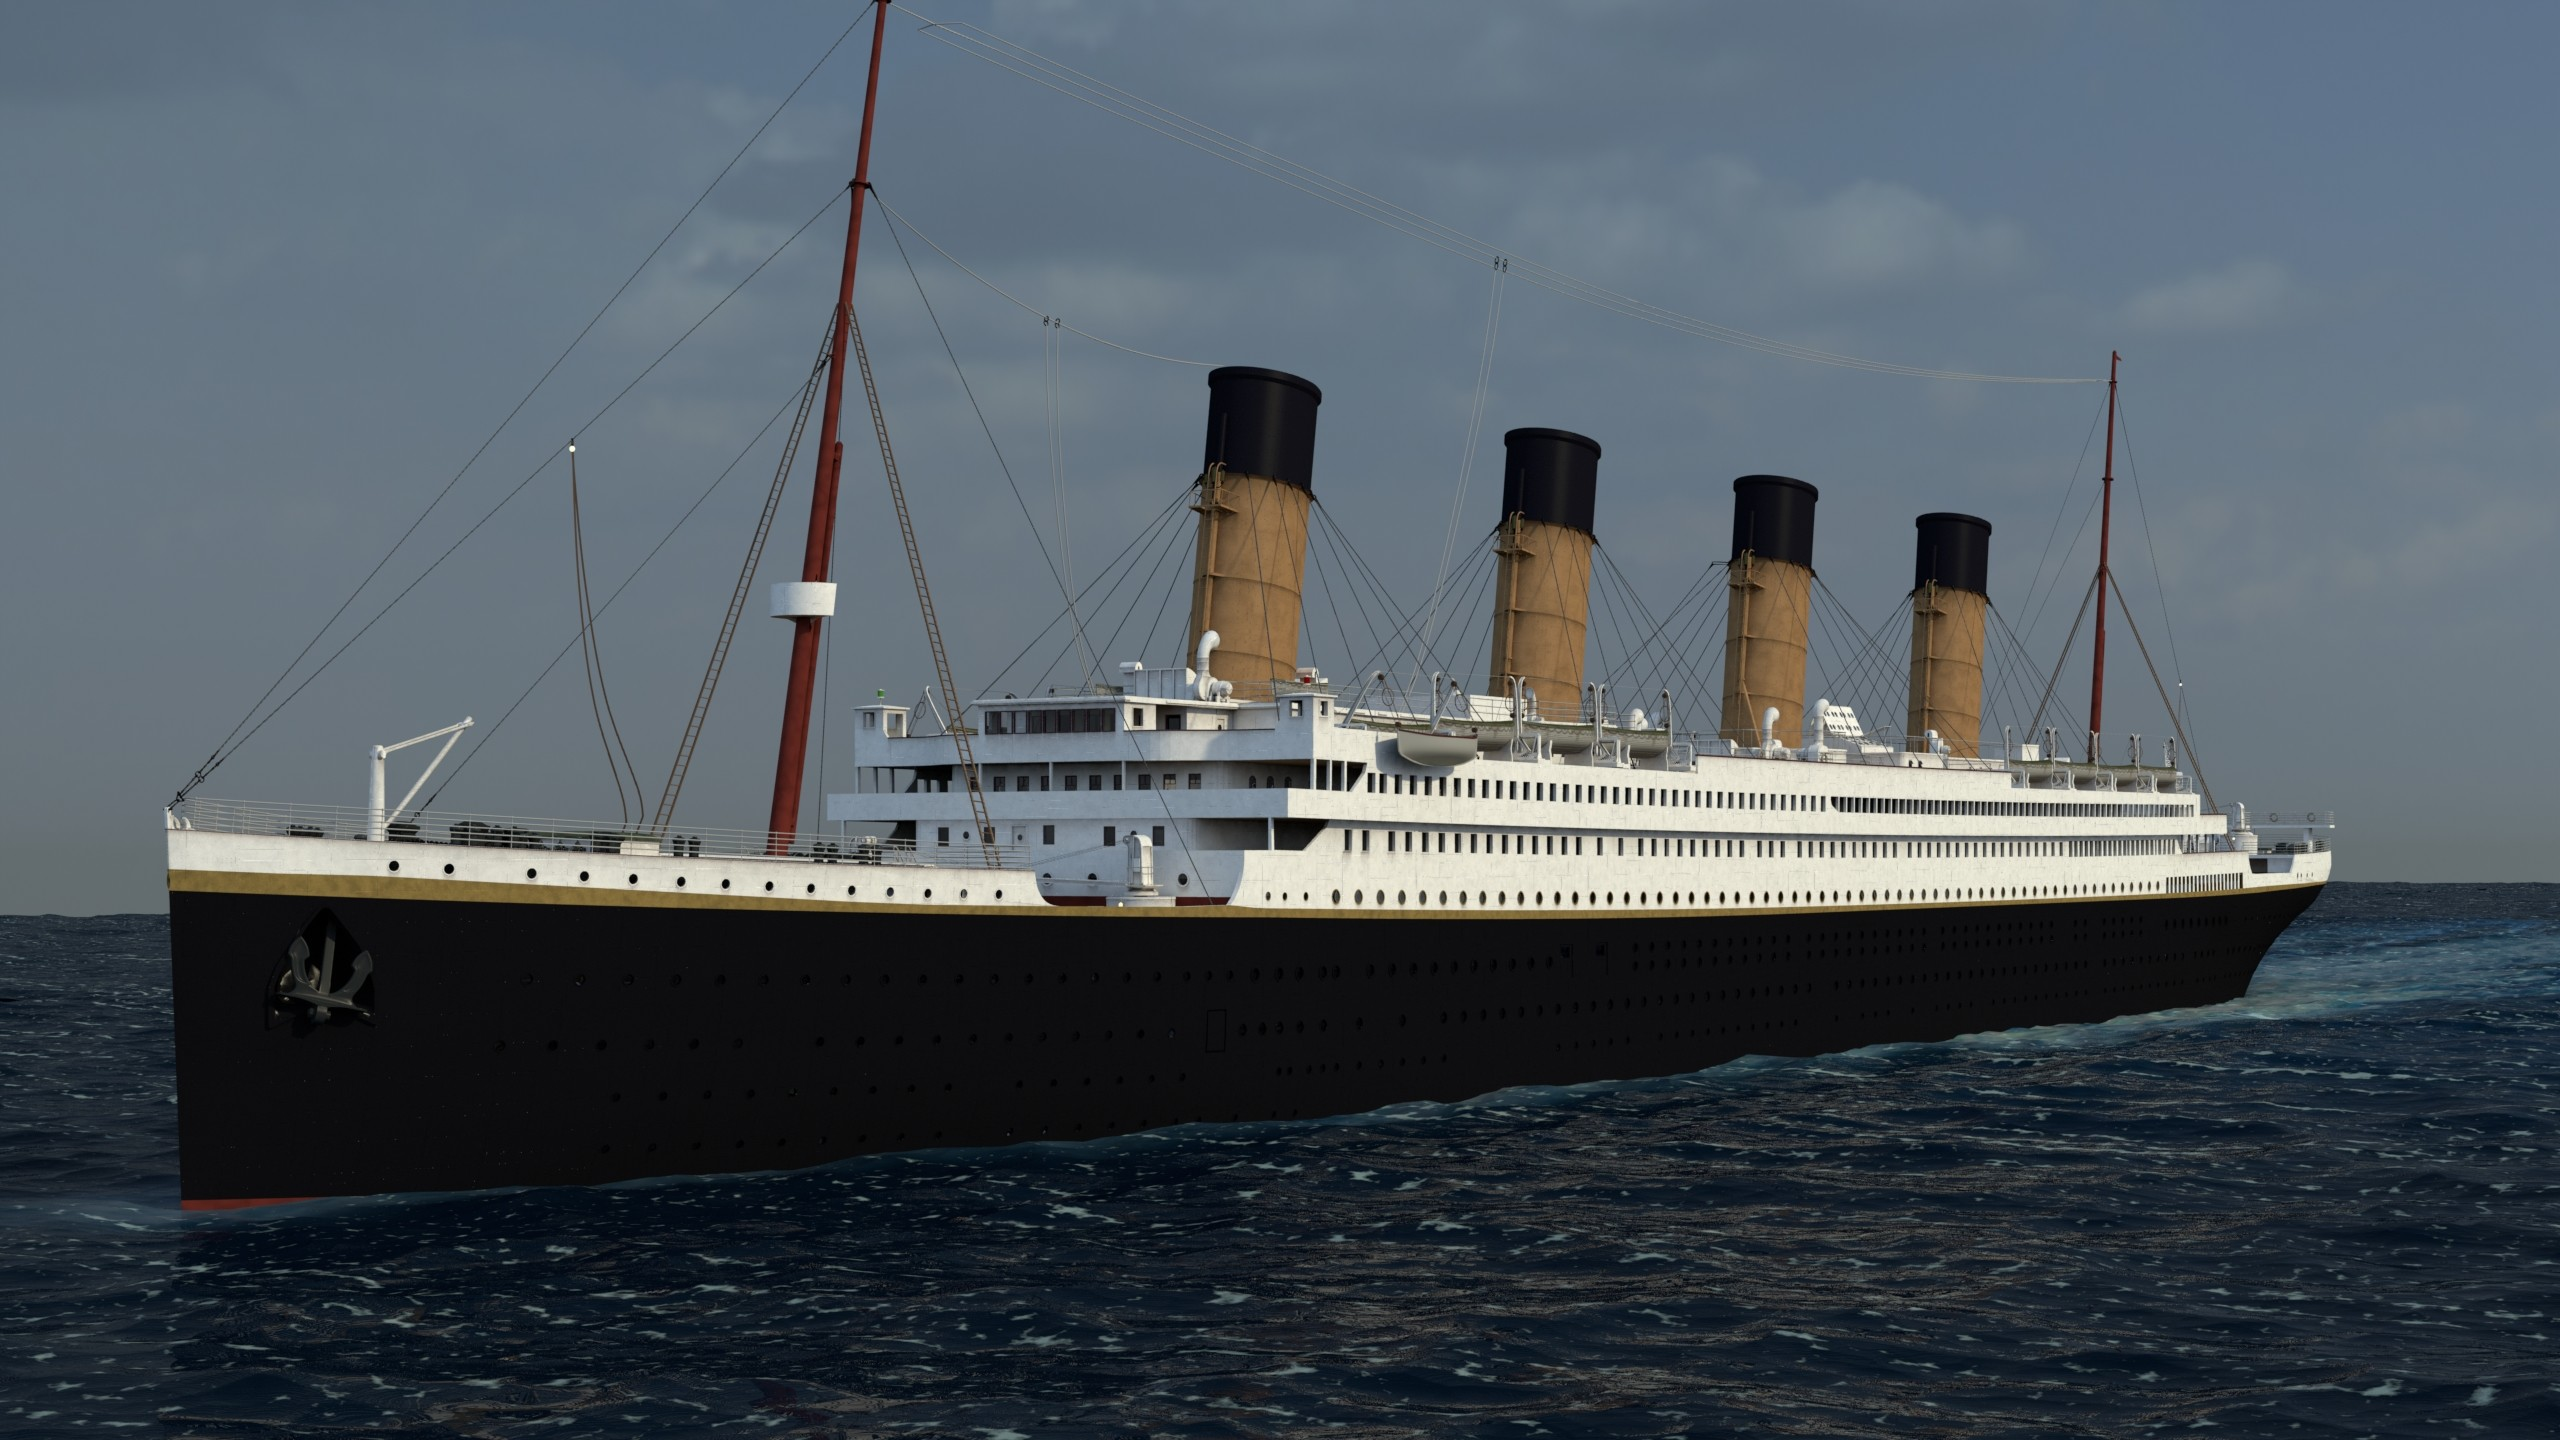 3d Wallpaper Apk Download Rms Titanic Wallpaper 183 ①